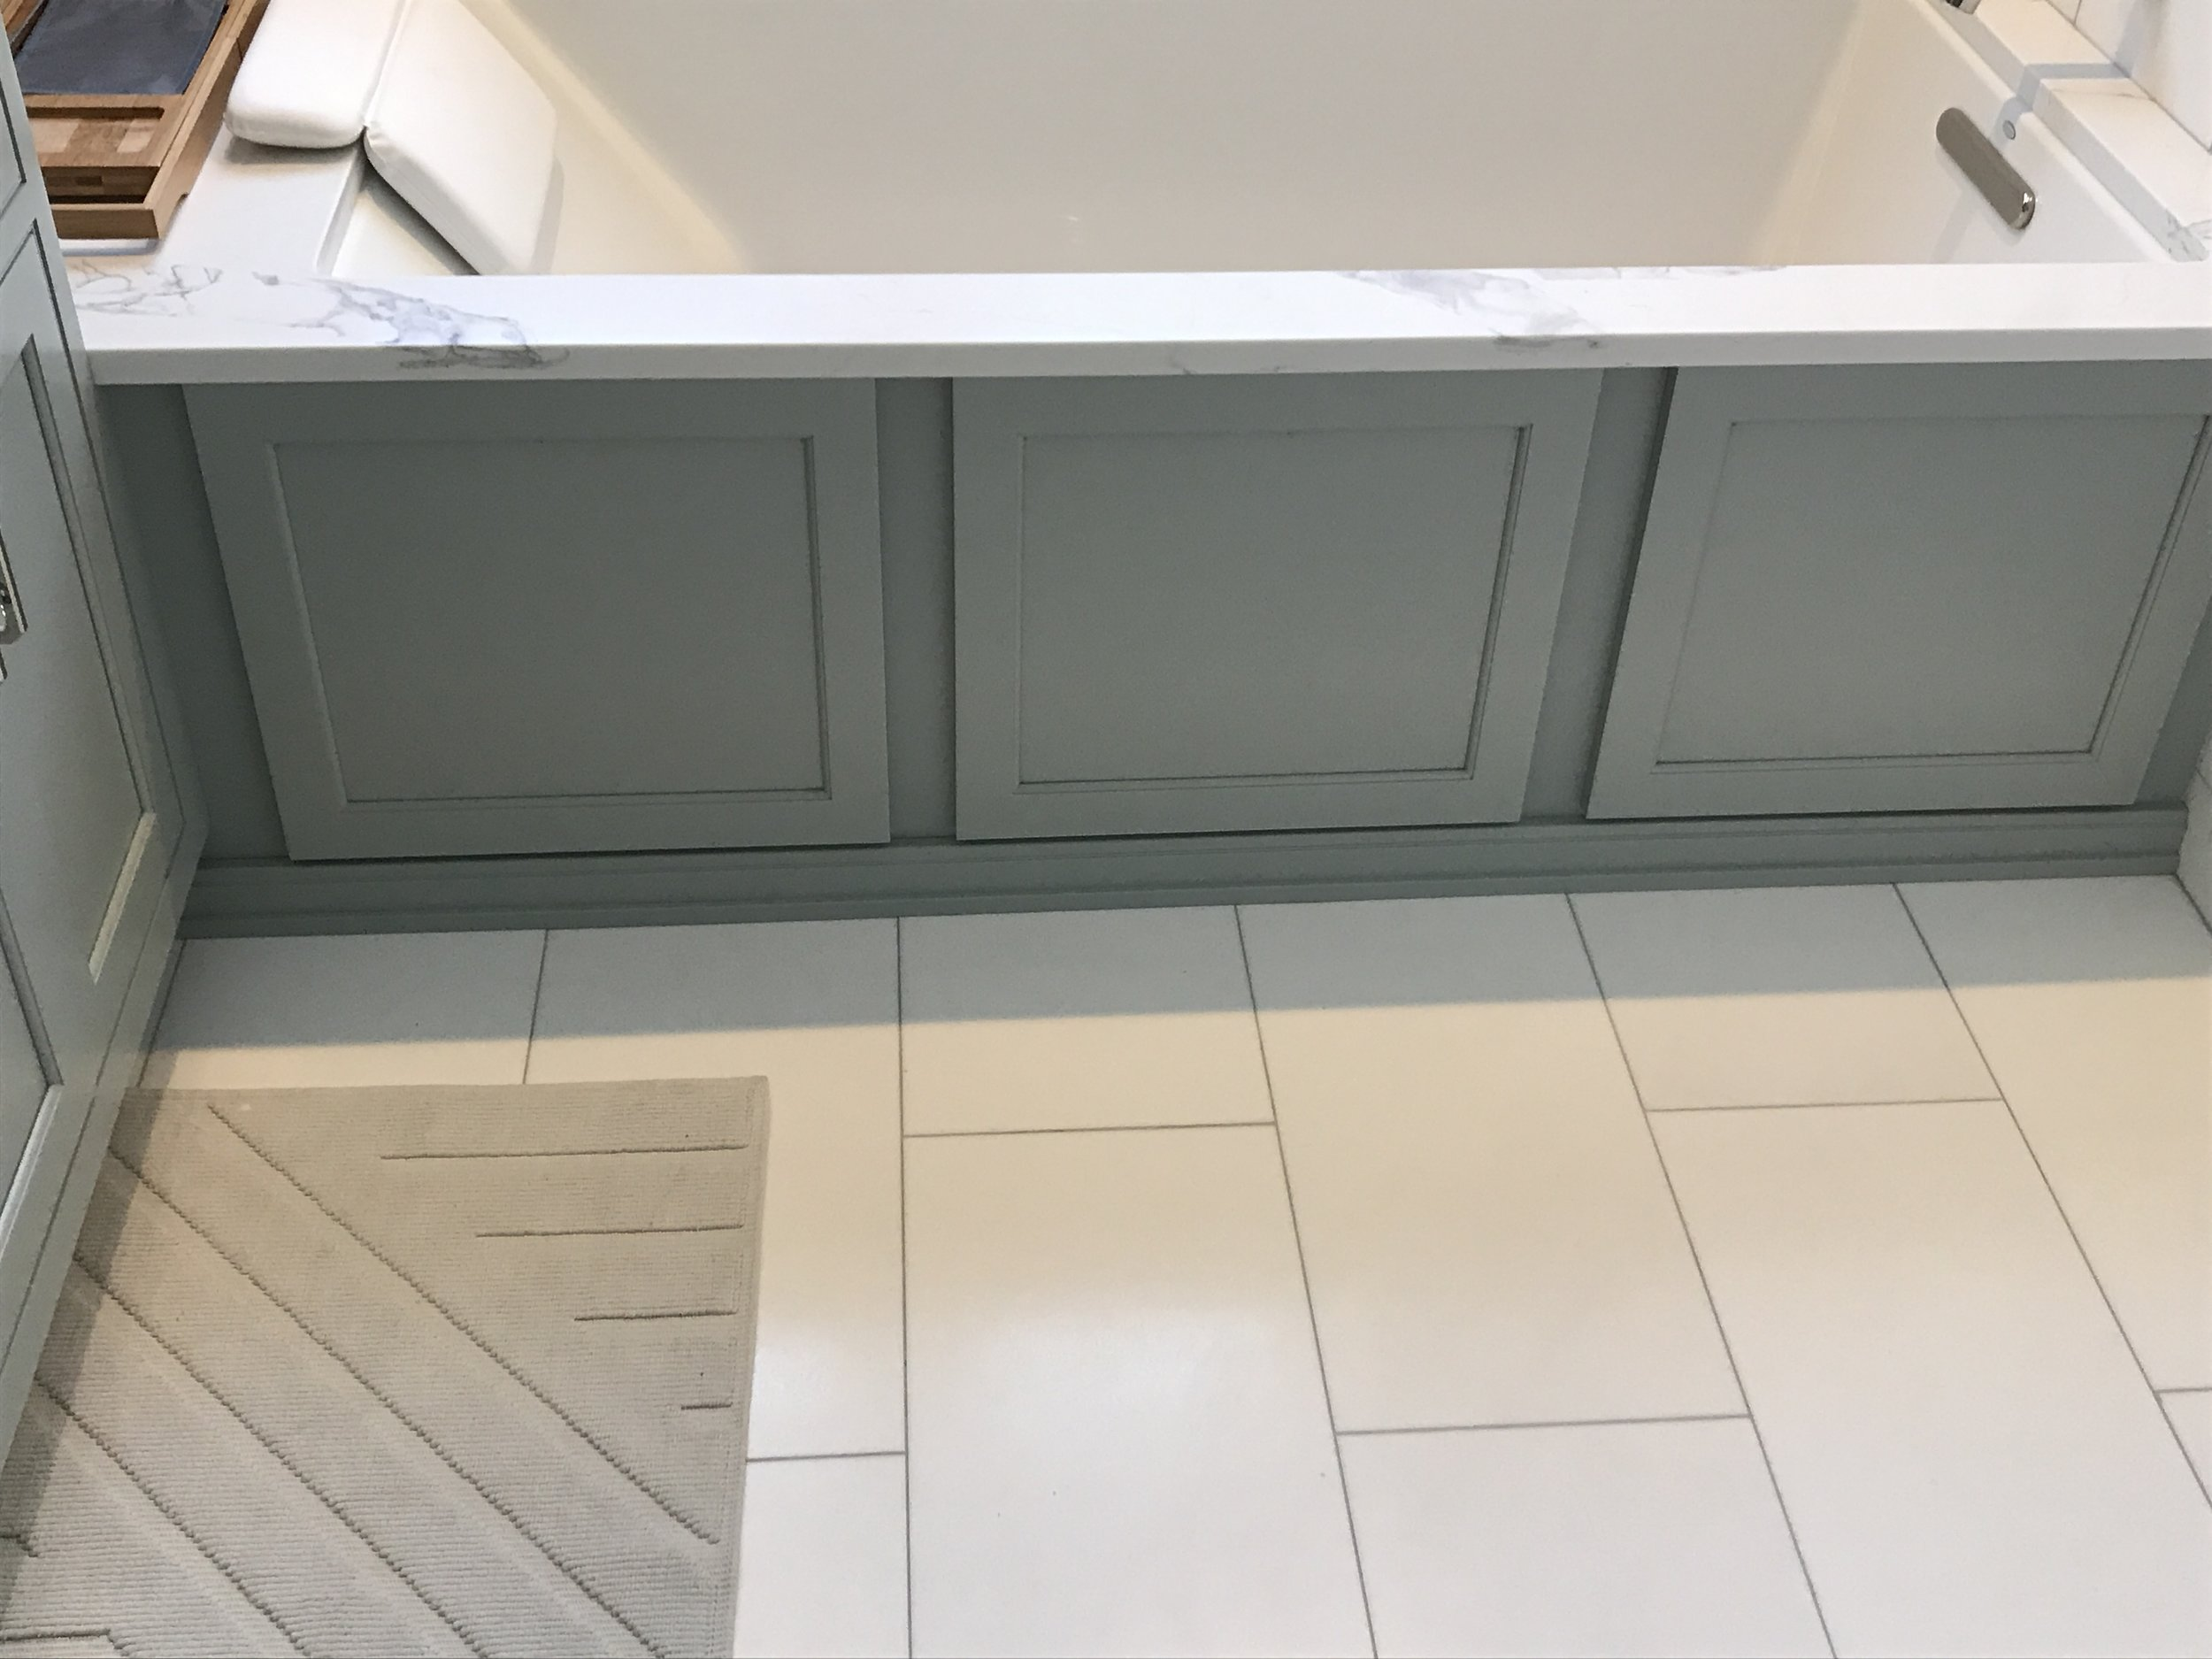 Custom skirt for tub deck, color matched to the vanity and wainscot on opposite wall, and a quartz deck surround.